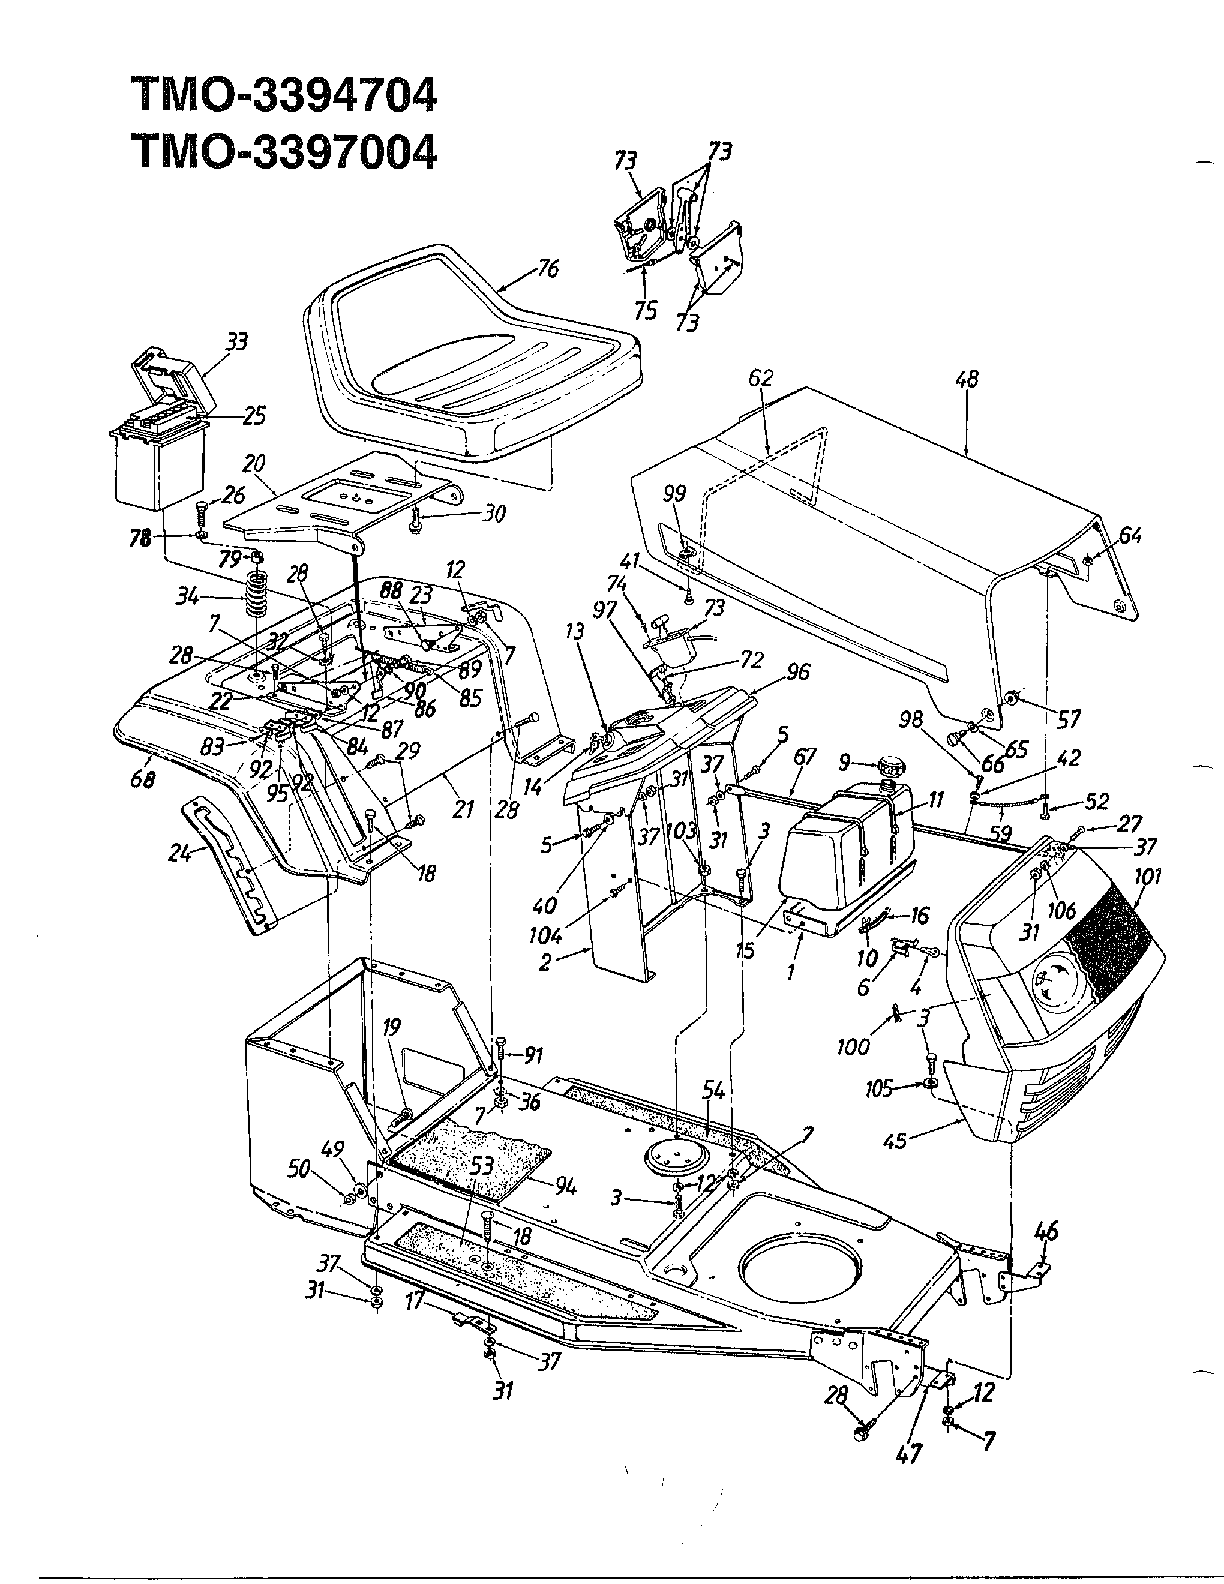 mtd engine wiring diagram mtd wiring diagram wiring diagram today [ 1224 x 1584 Pixel ]